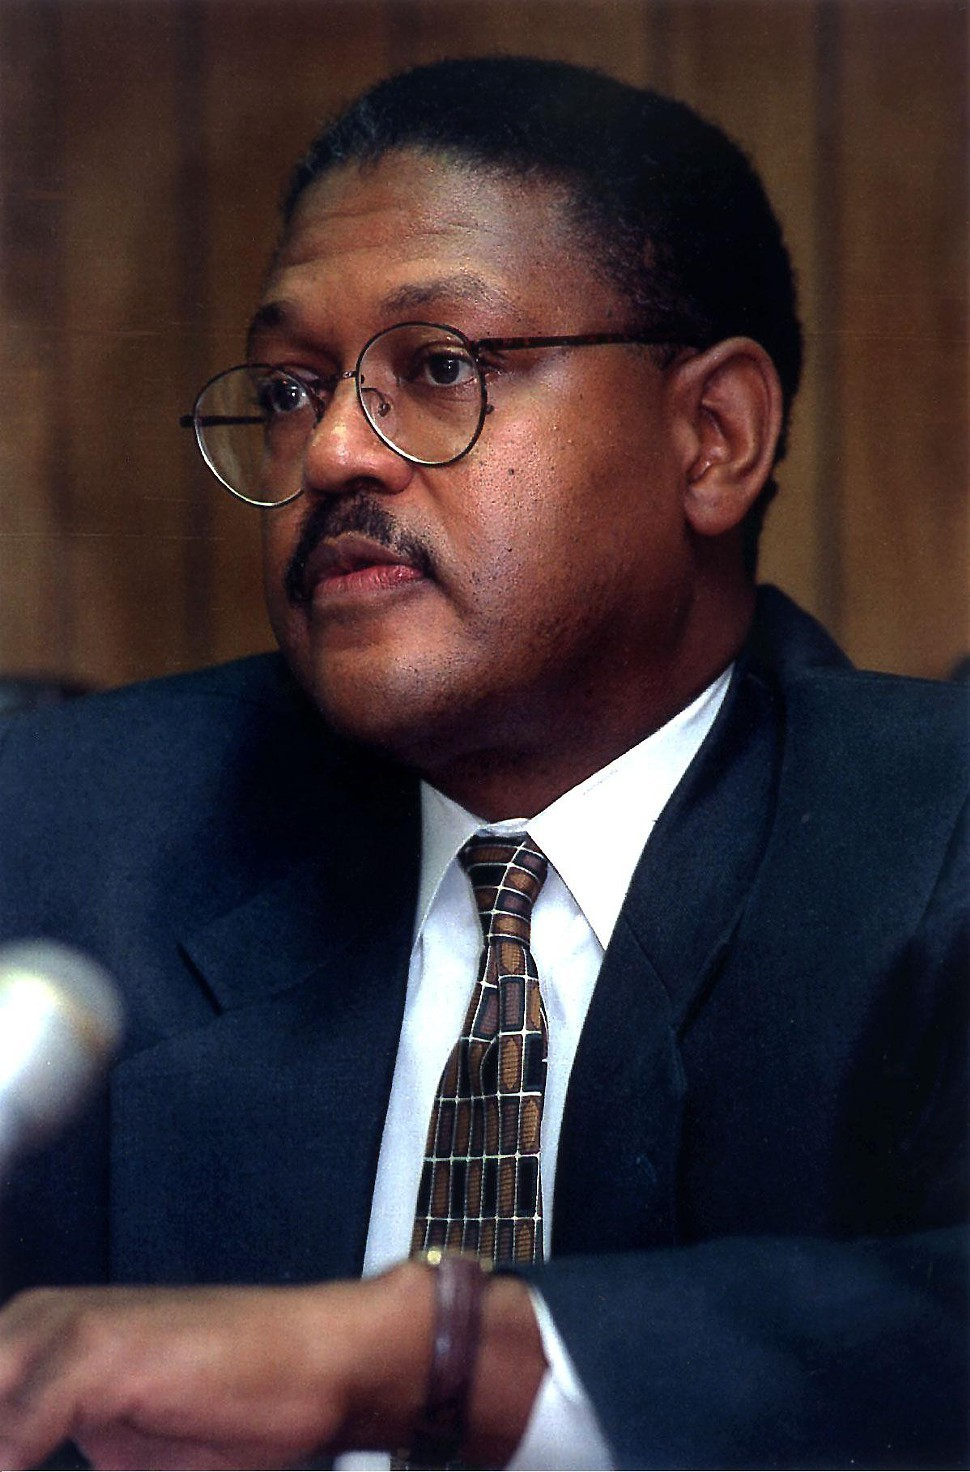 After the killing of Dantrell Davis in 1992, CHA chairman Vincent Lane called for the national guard to help secure Cabrini-Green